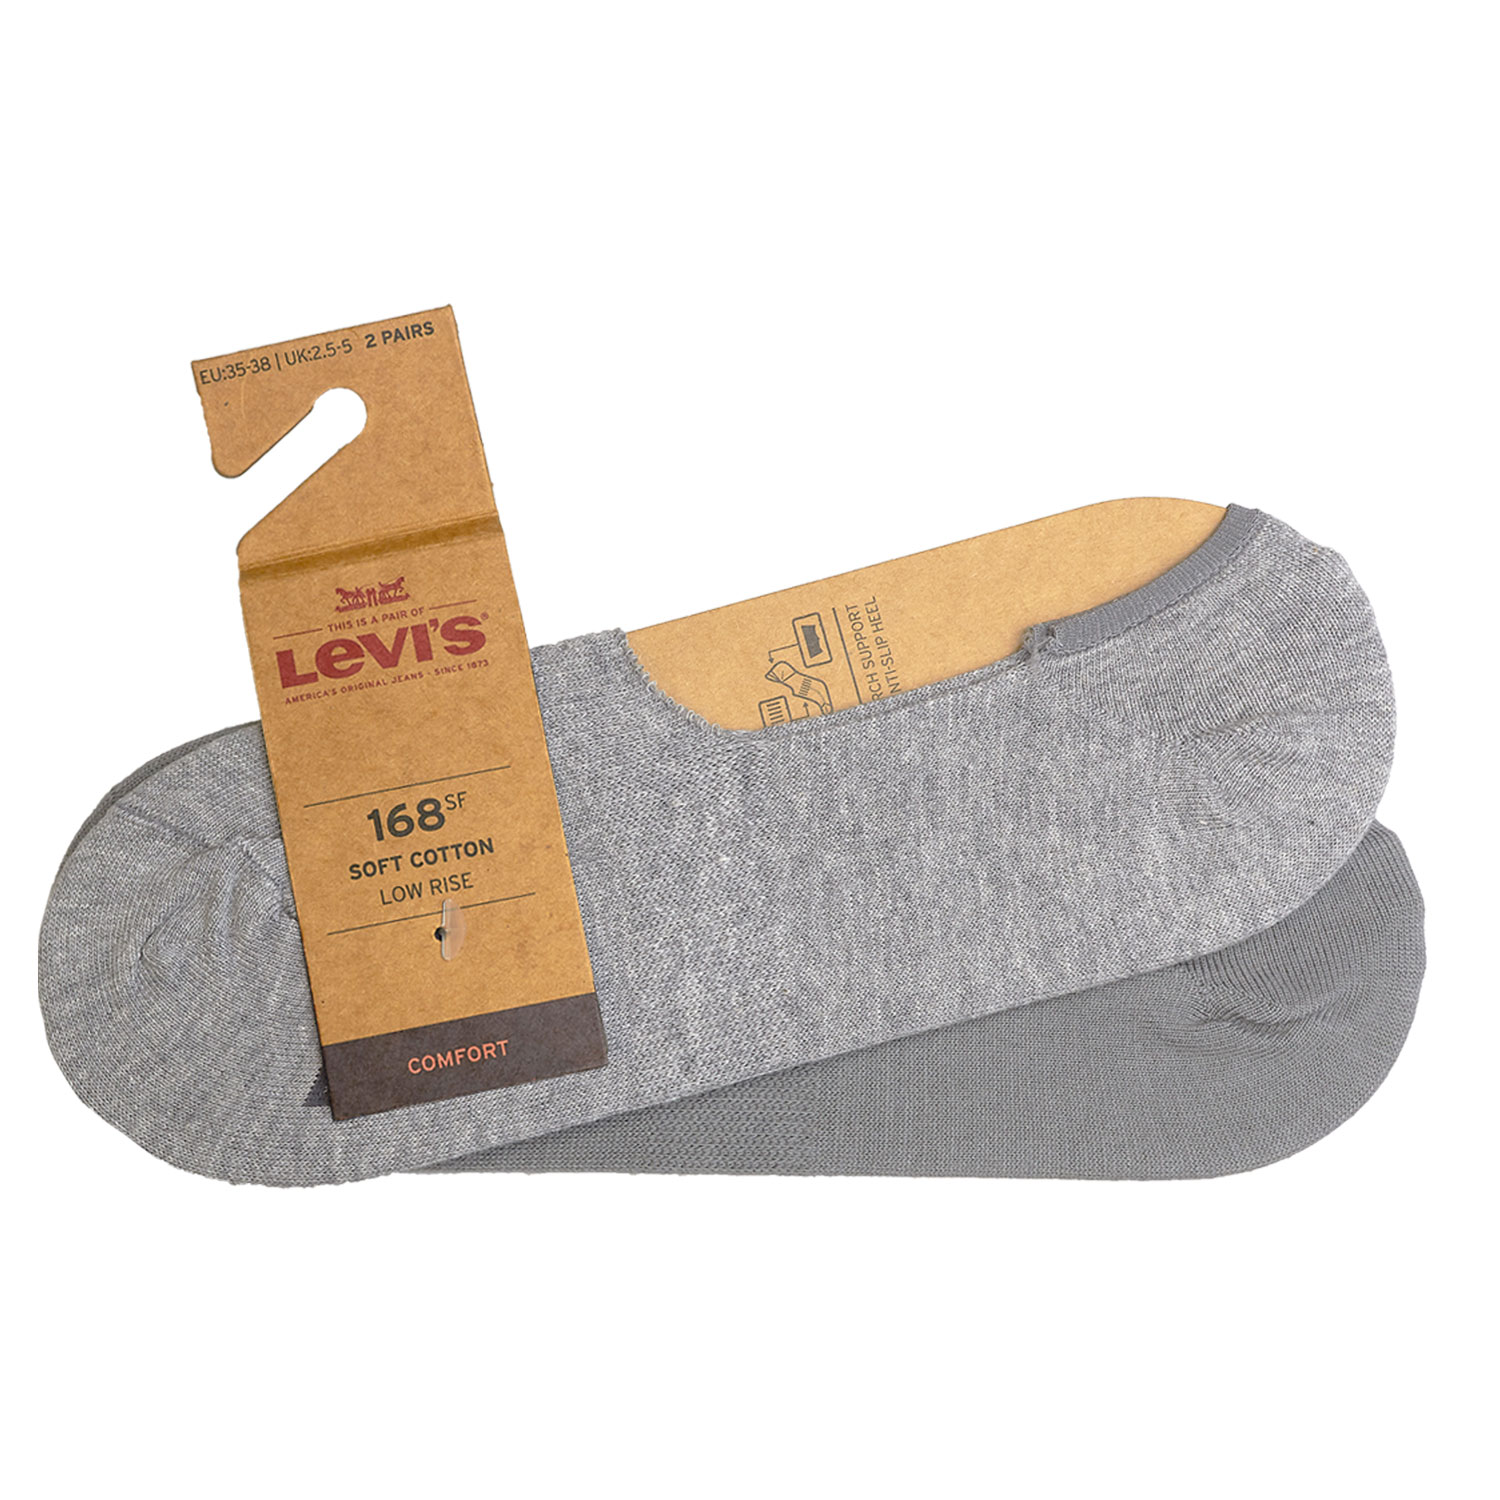 Levi's Füßlinge 8 Paar Low Rise Soft Cotton 943001001 Sneaker Footies Levis – Bild 8